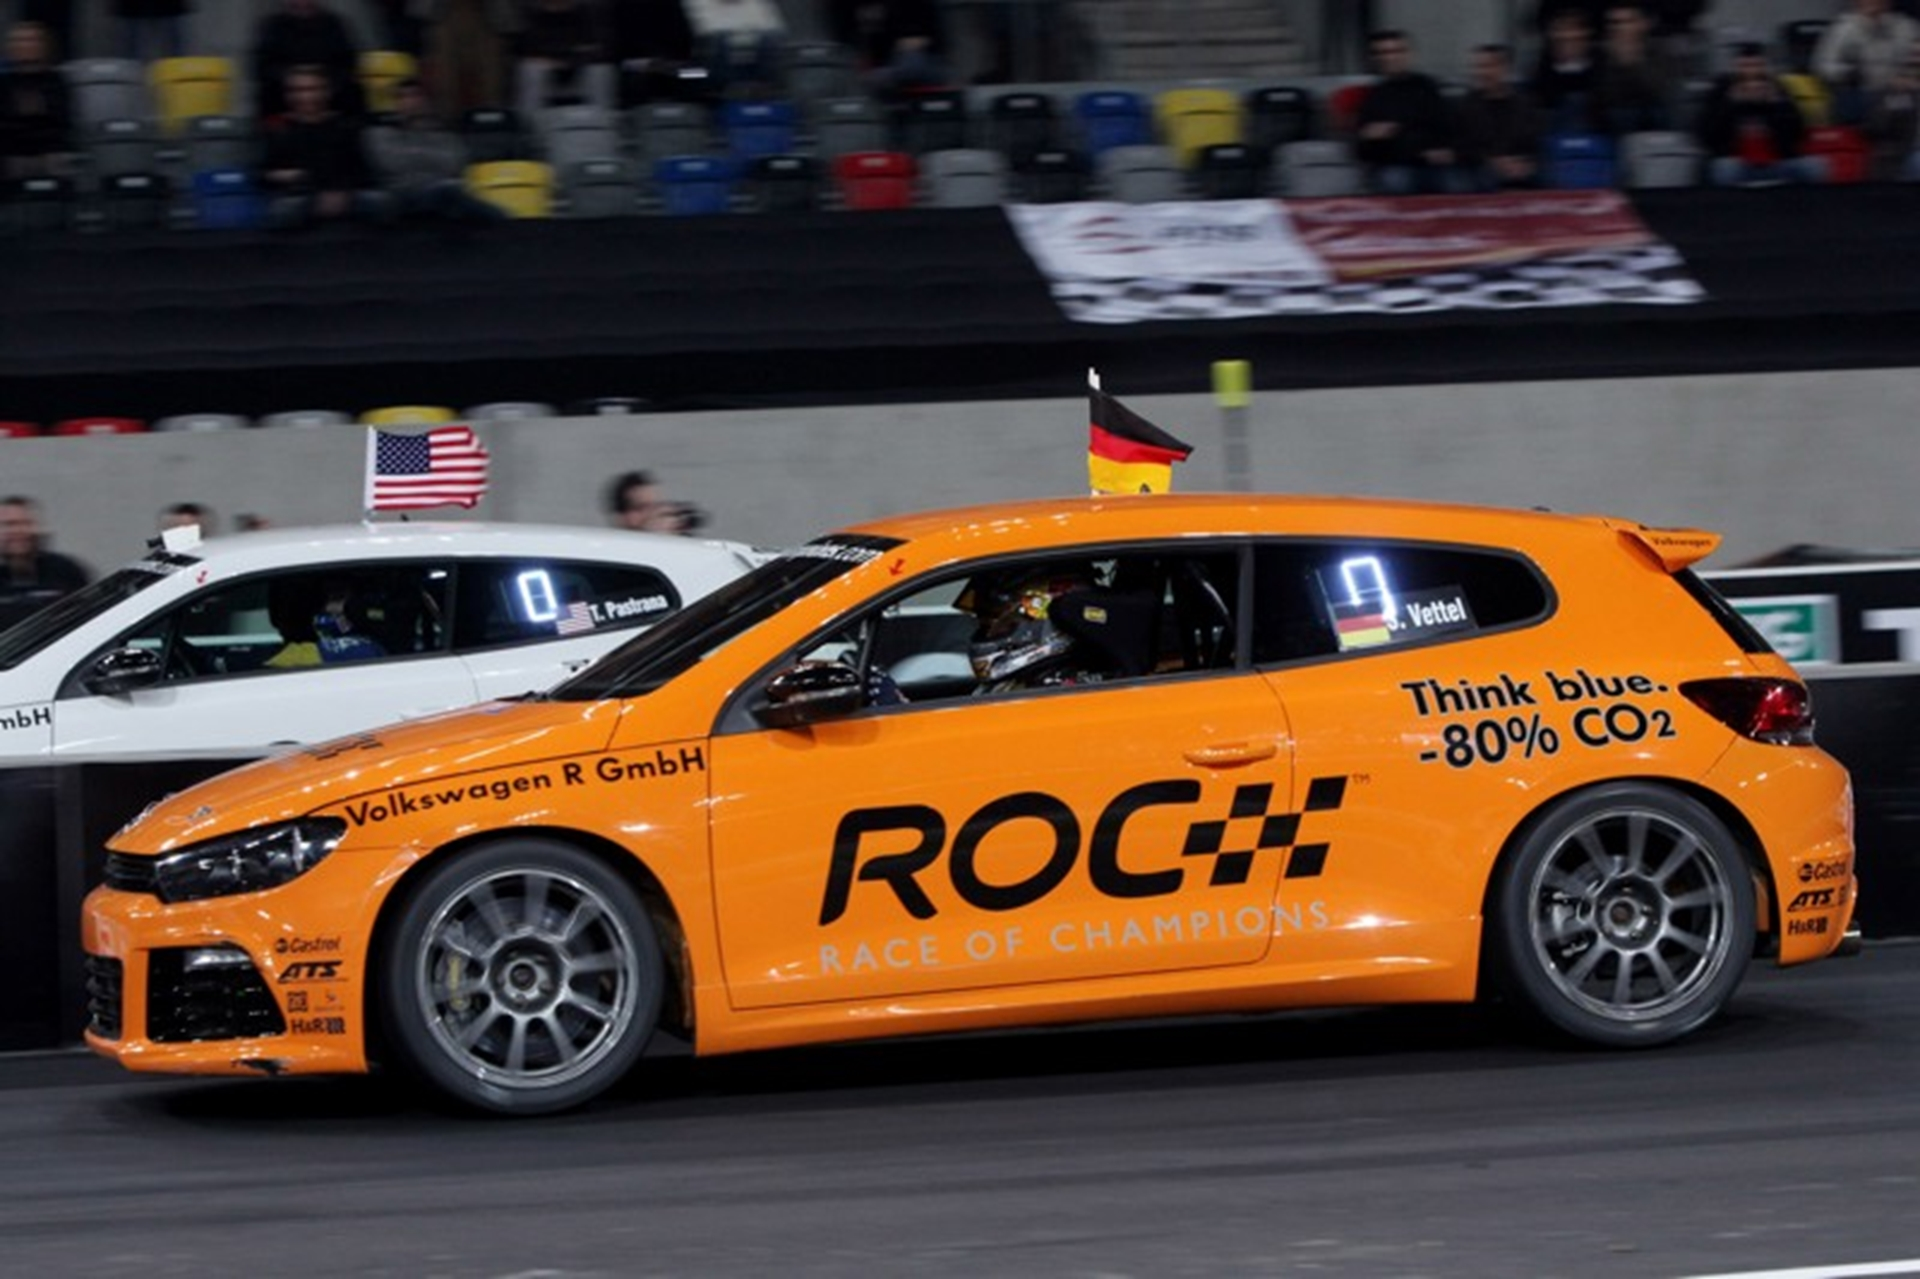 Volkswagen at Race of Champions 2011